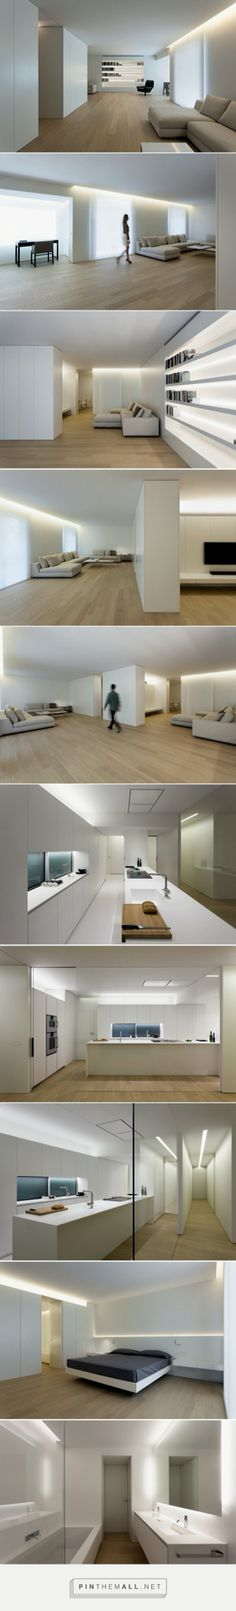 Interior architecture design - fran silvestre arquitectos renovates antiguo reino house a grouped images picture Pin Them All